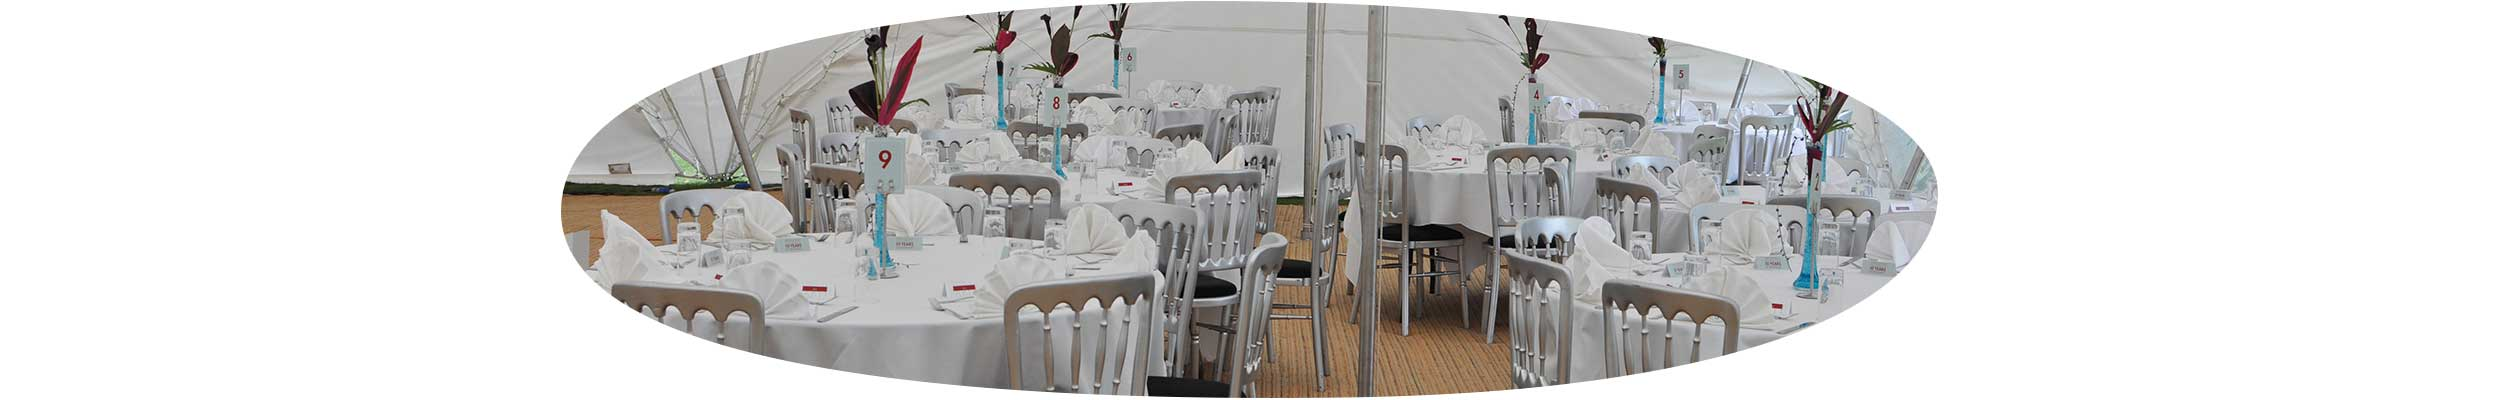 Hire chairs, tables, other furnishings, accessories and equipment suitable for any of our marquees